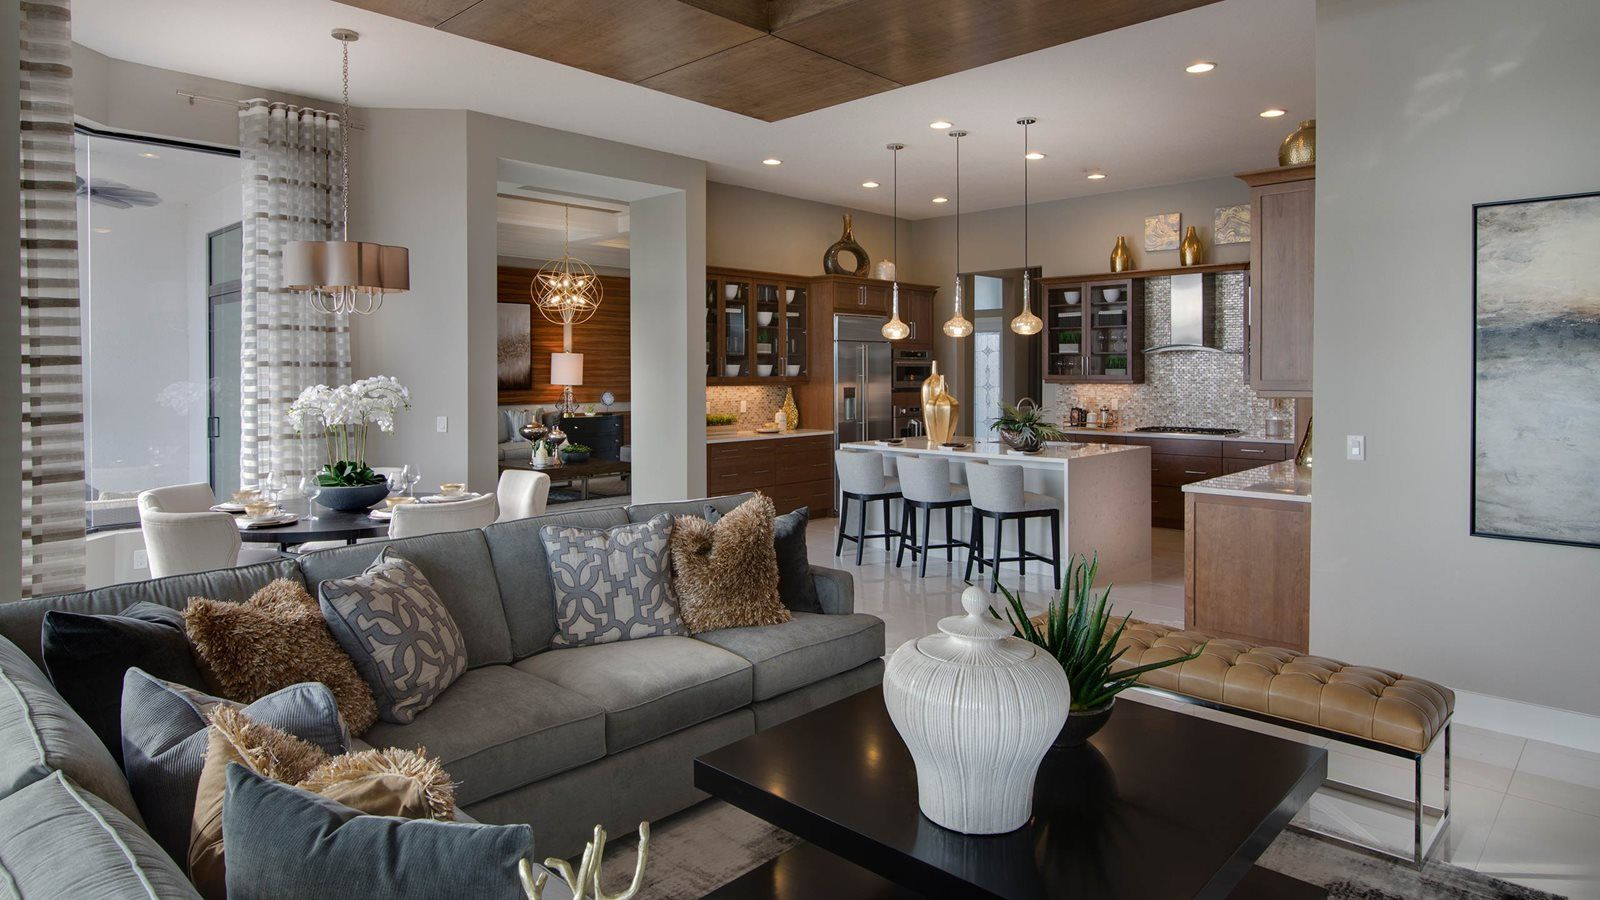 Artistry Sarasota in Sarasota, FL, now available for showing by Anthony Santiago